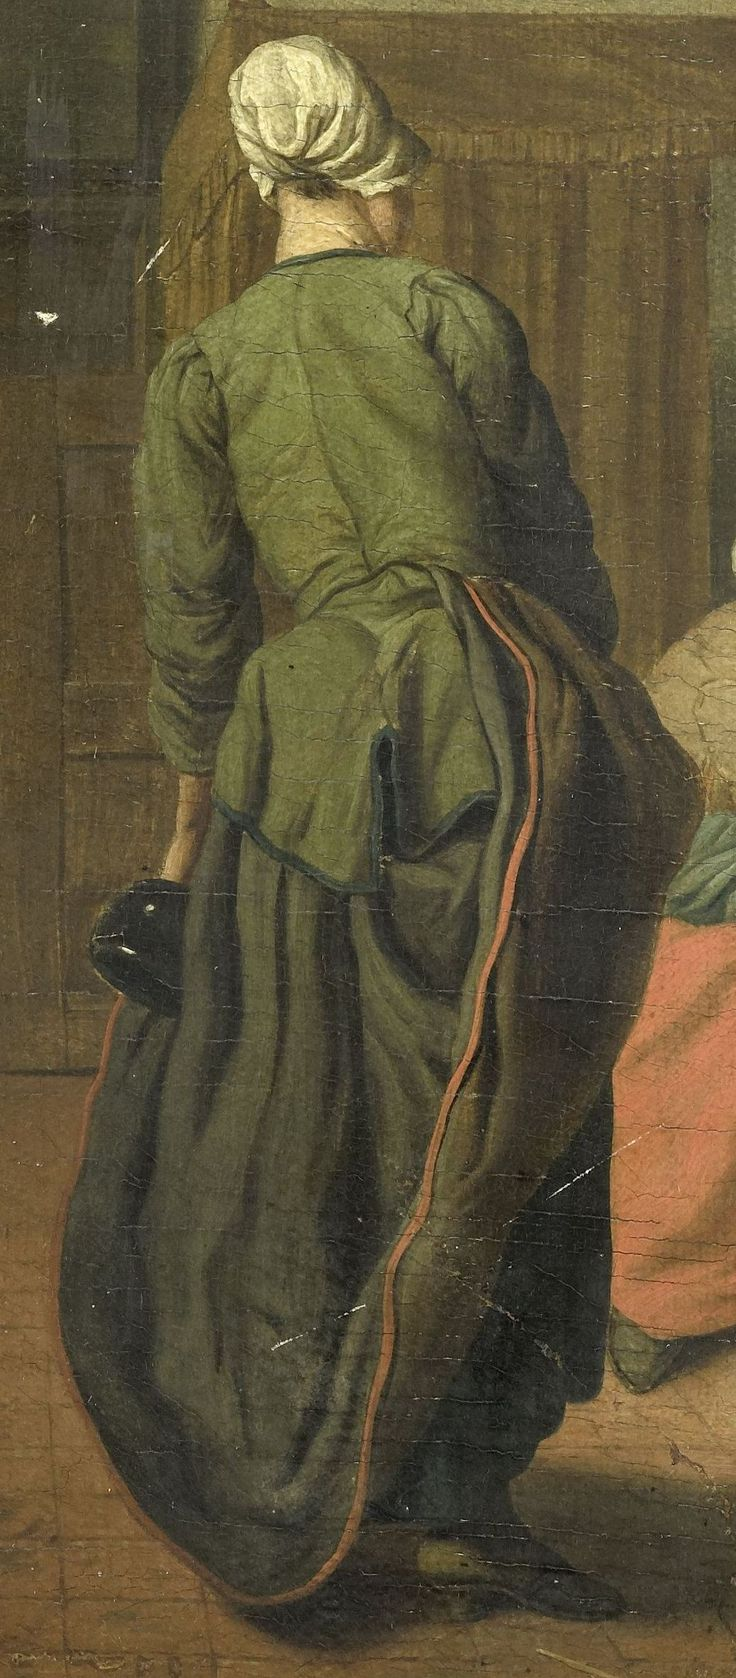 """1740 - 1760. Detail of """"Vrolijk gezelschap"""" (The Merry Company) by Jan Jozef Horemans II (Flemish painter). Women -- Clothing & dress -- 1700-1799 -- Belgium. 18th century Flemish costume. She wears a green jacket with darker green edging. Her black or dark brown petticoat has a red binding at the hem. She has another petticoat underneath, perhaps navy blue. Demonstrating one of the many ways in which the top skirt can be pulled up and tucked into the waistband."""